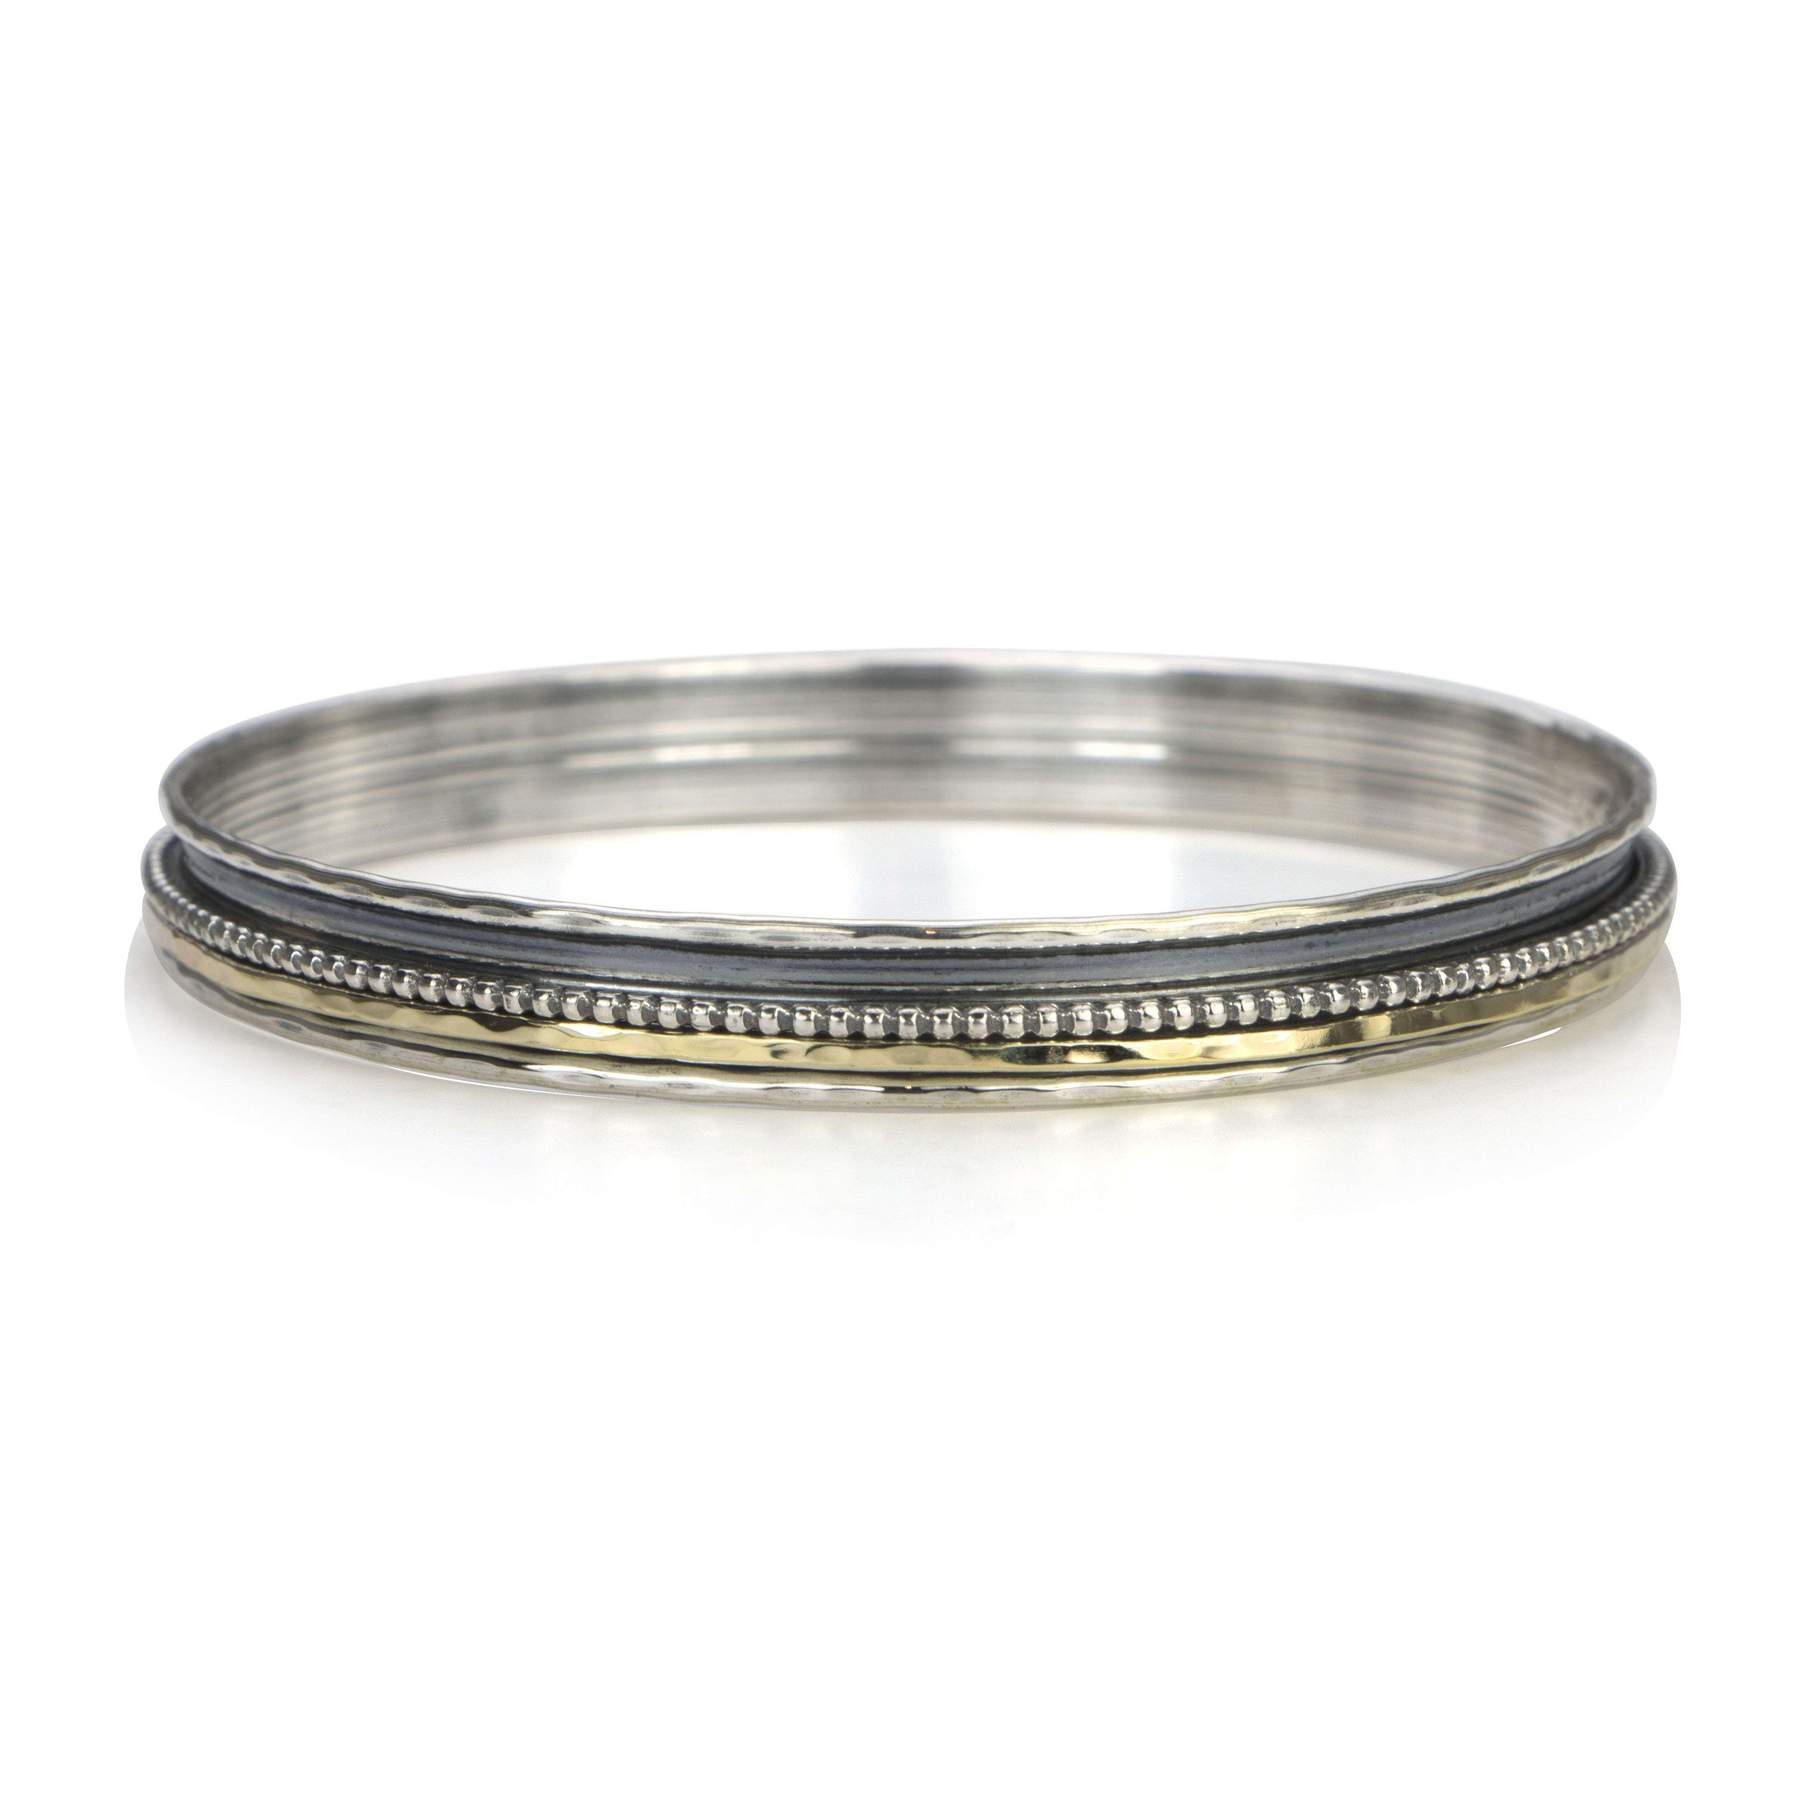 MeditationRings - Blissful Bangle Collection - Simplicity